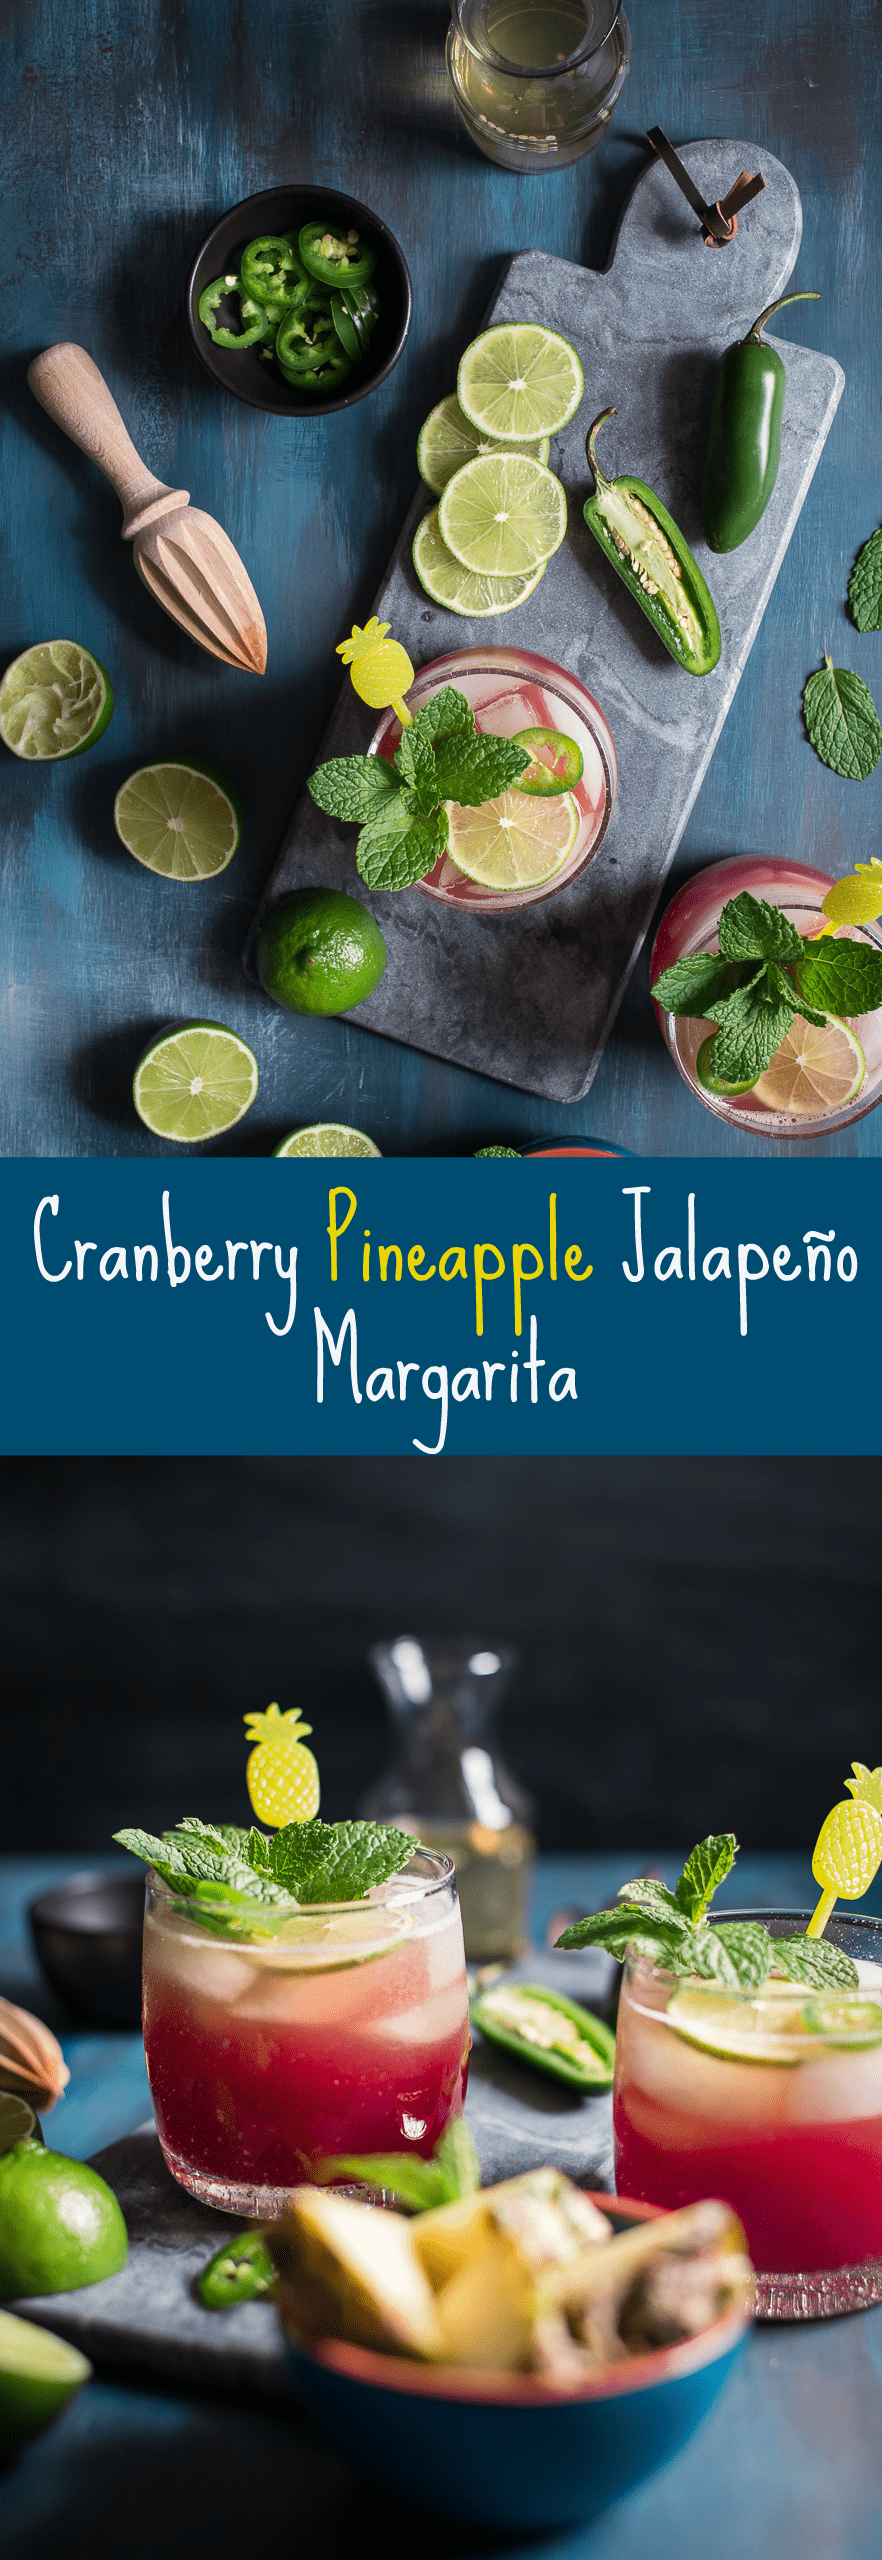 Cranberry Pineapple Jalapeno Margaritas